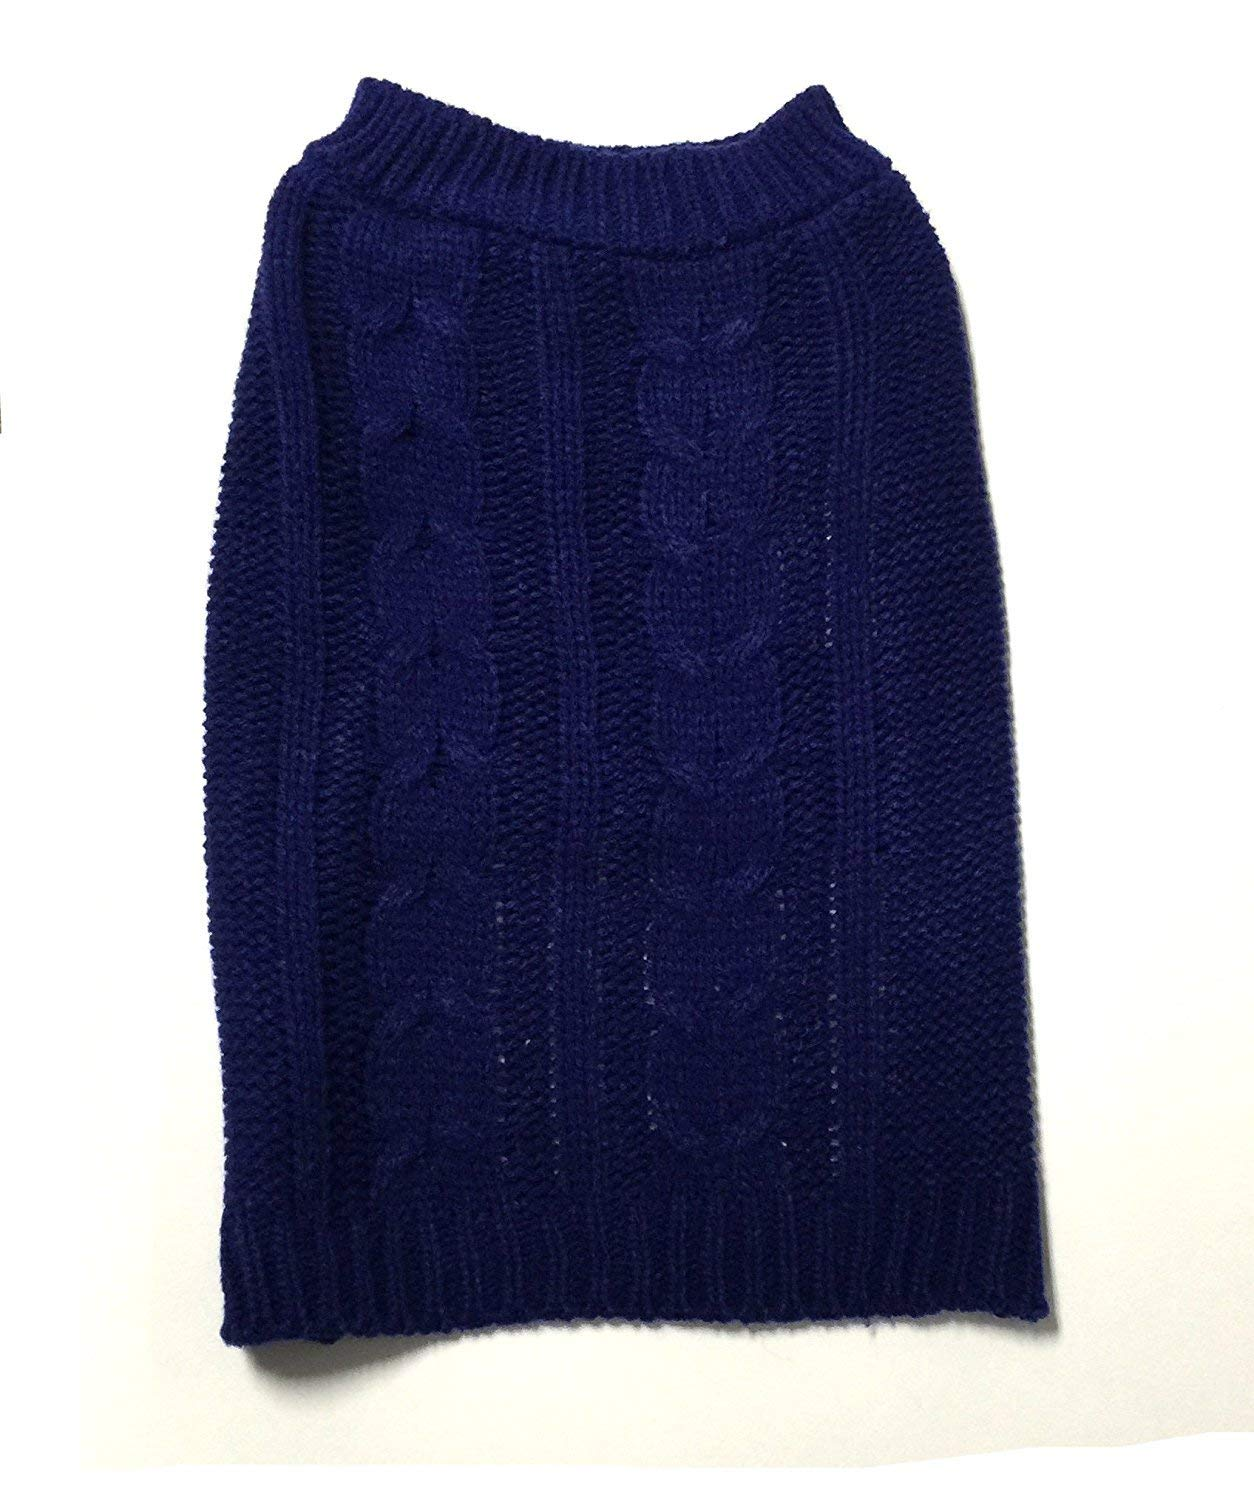 Navy X-Small Navy X-Small Midlee Cable Knit Dog Sweater (X-Small, Navy)